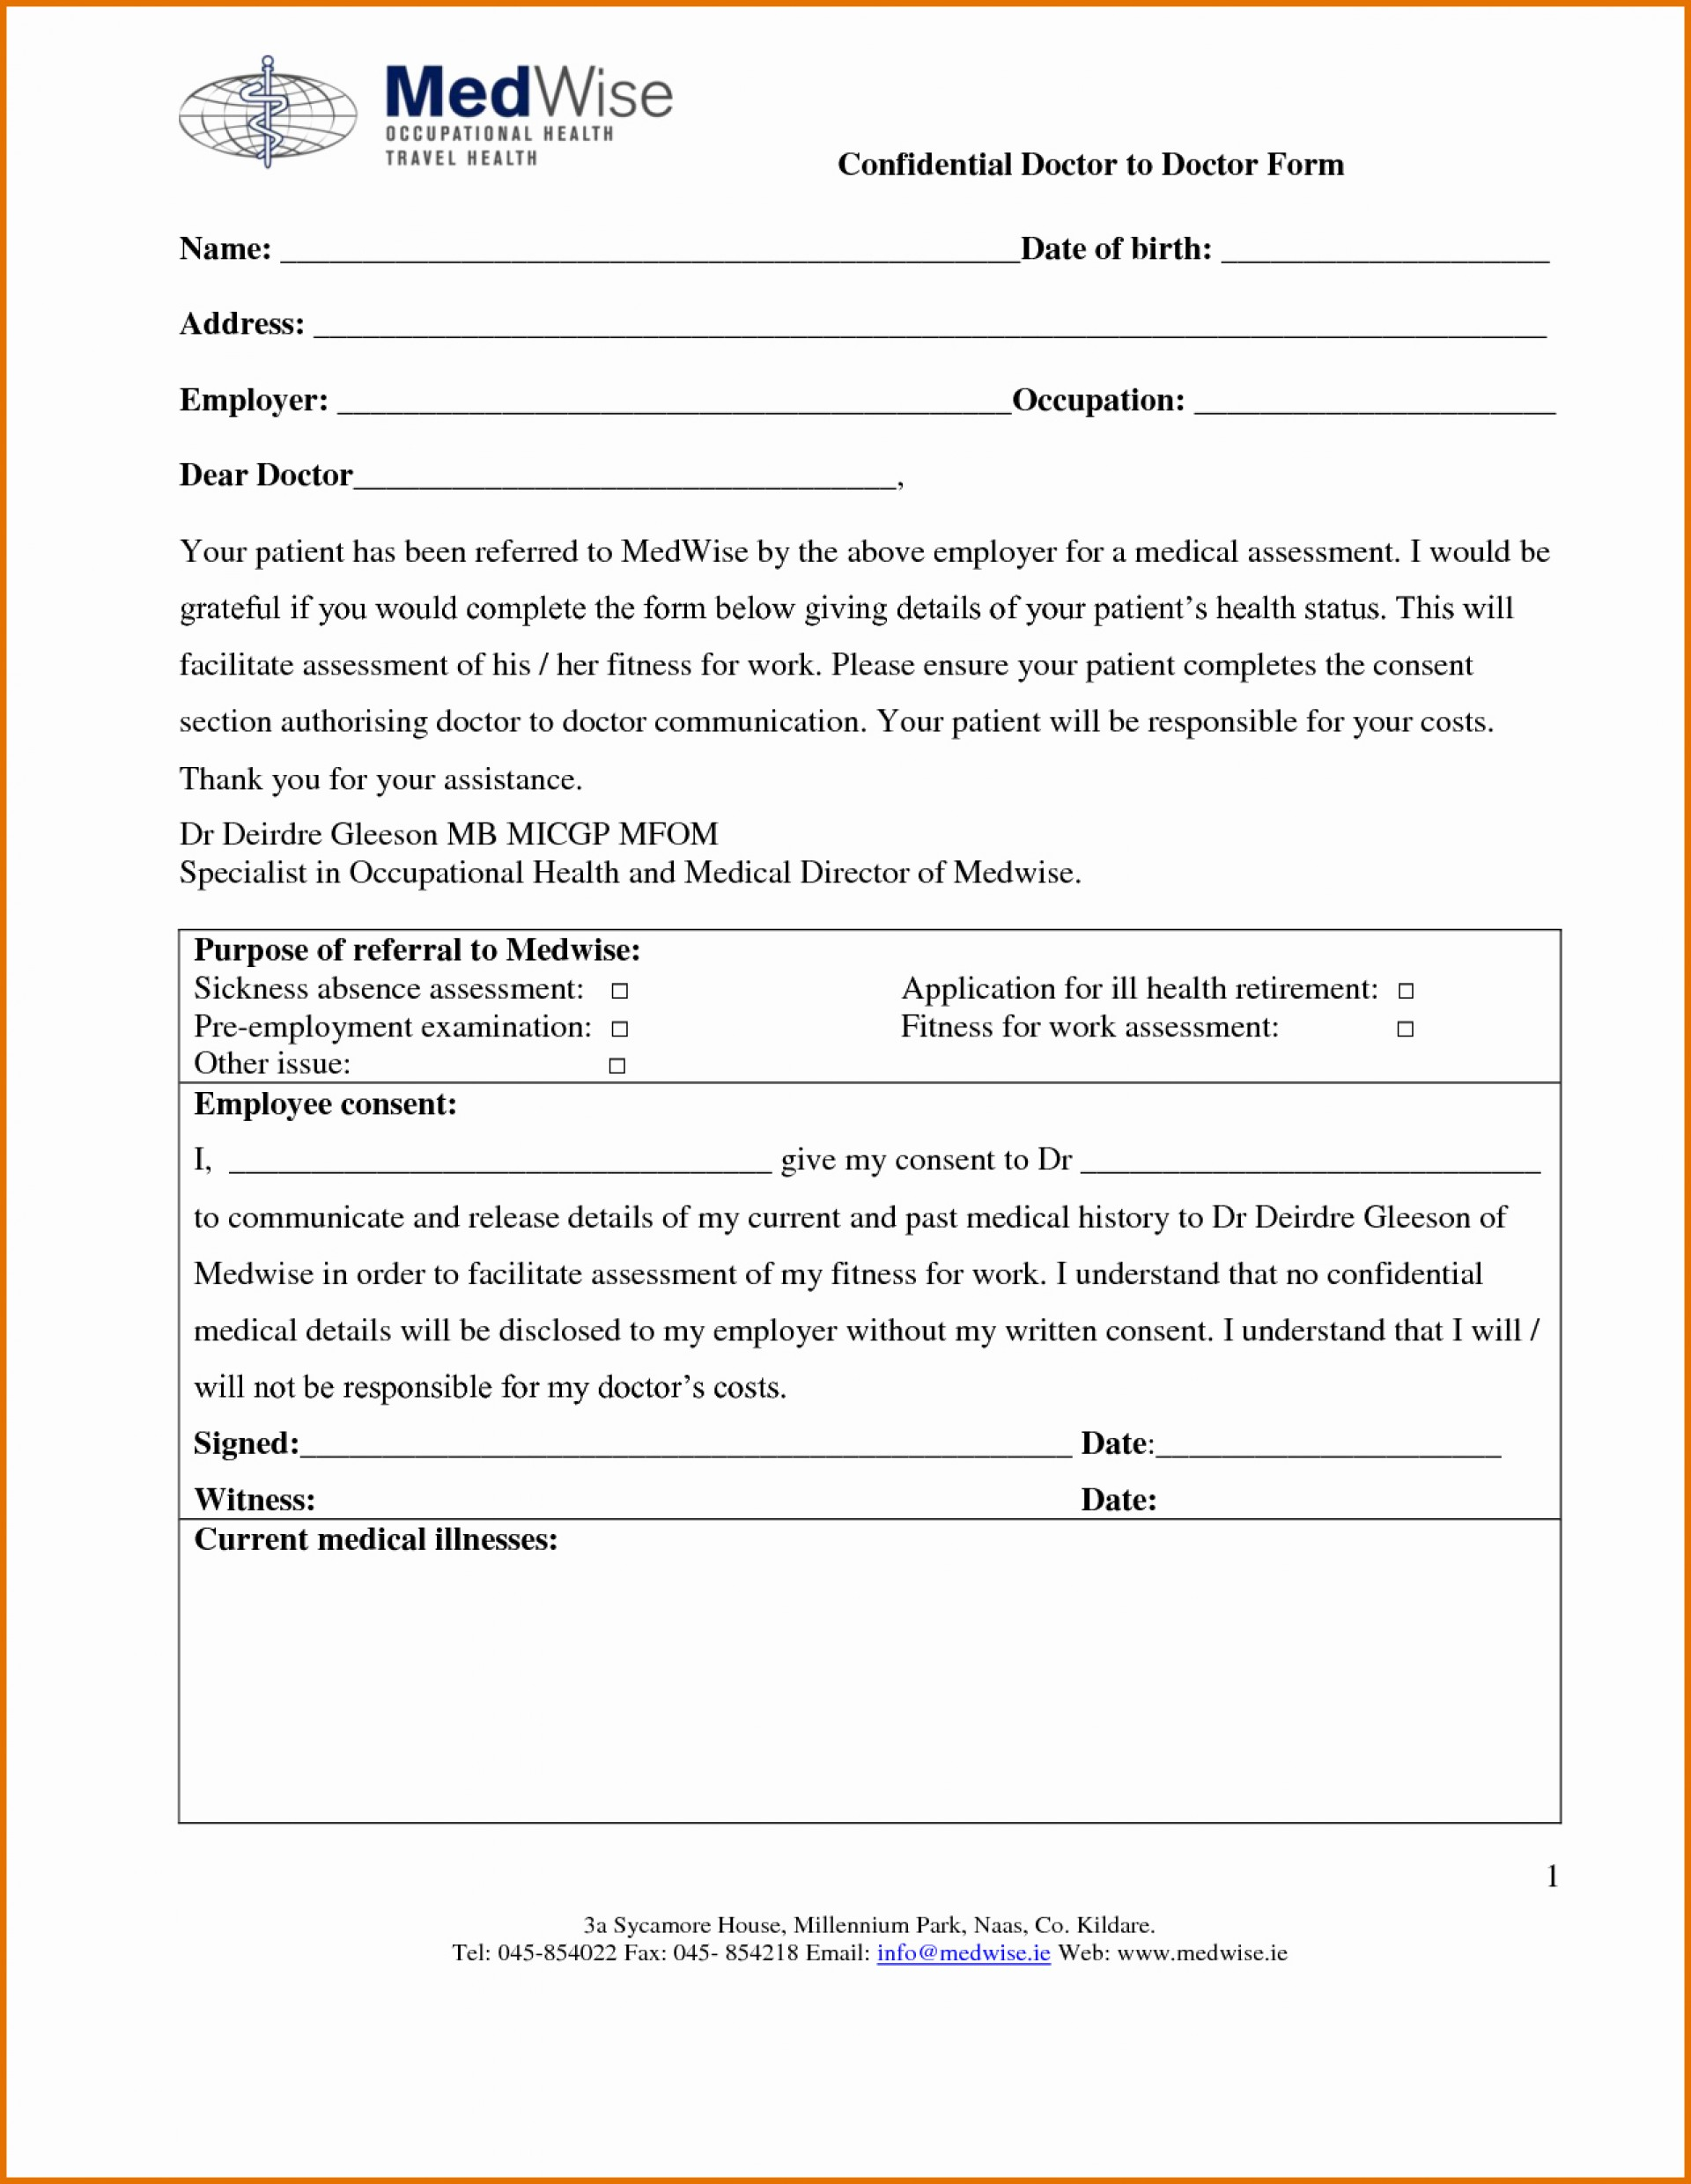 023 Doctors Excuse For School Fake Doctor Work Template Note Pdf - Free Printable Doctors Excuse For Work